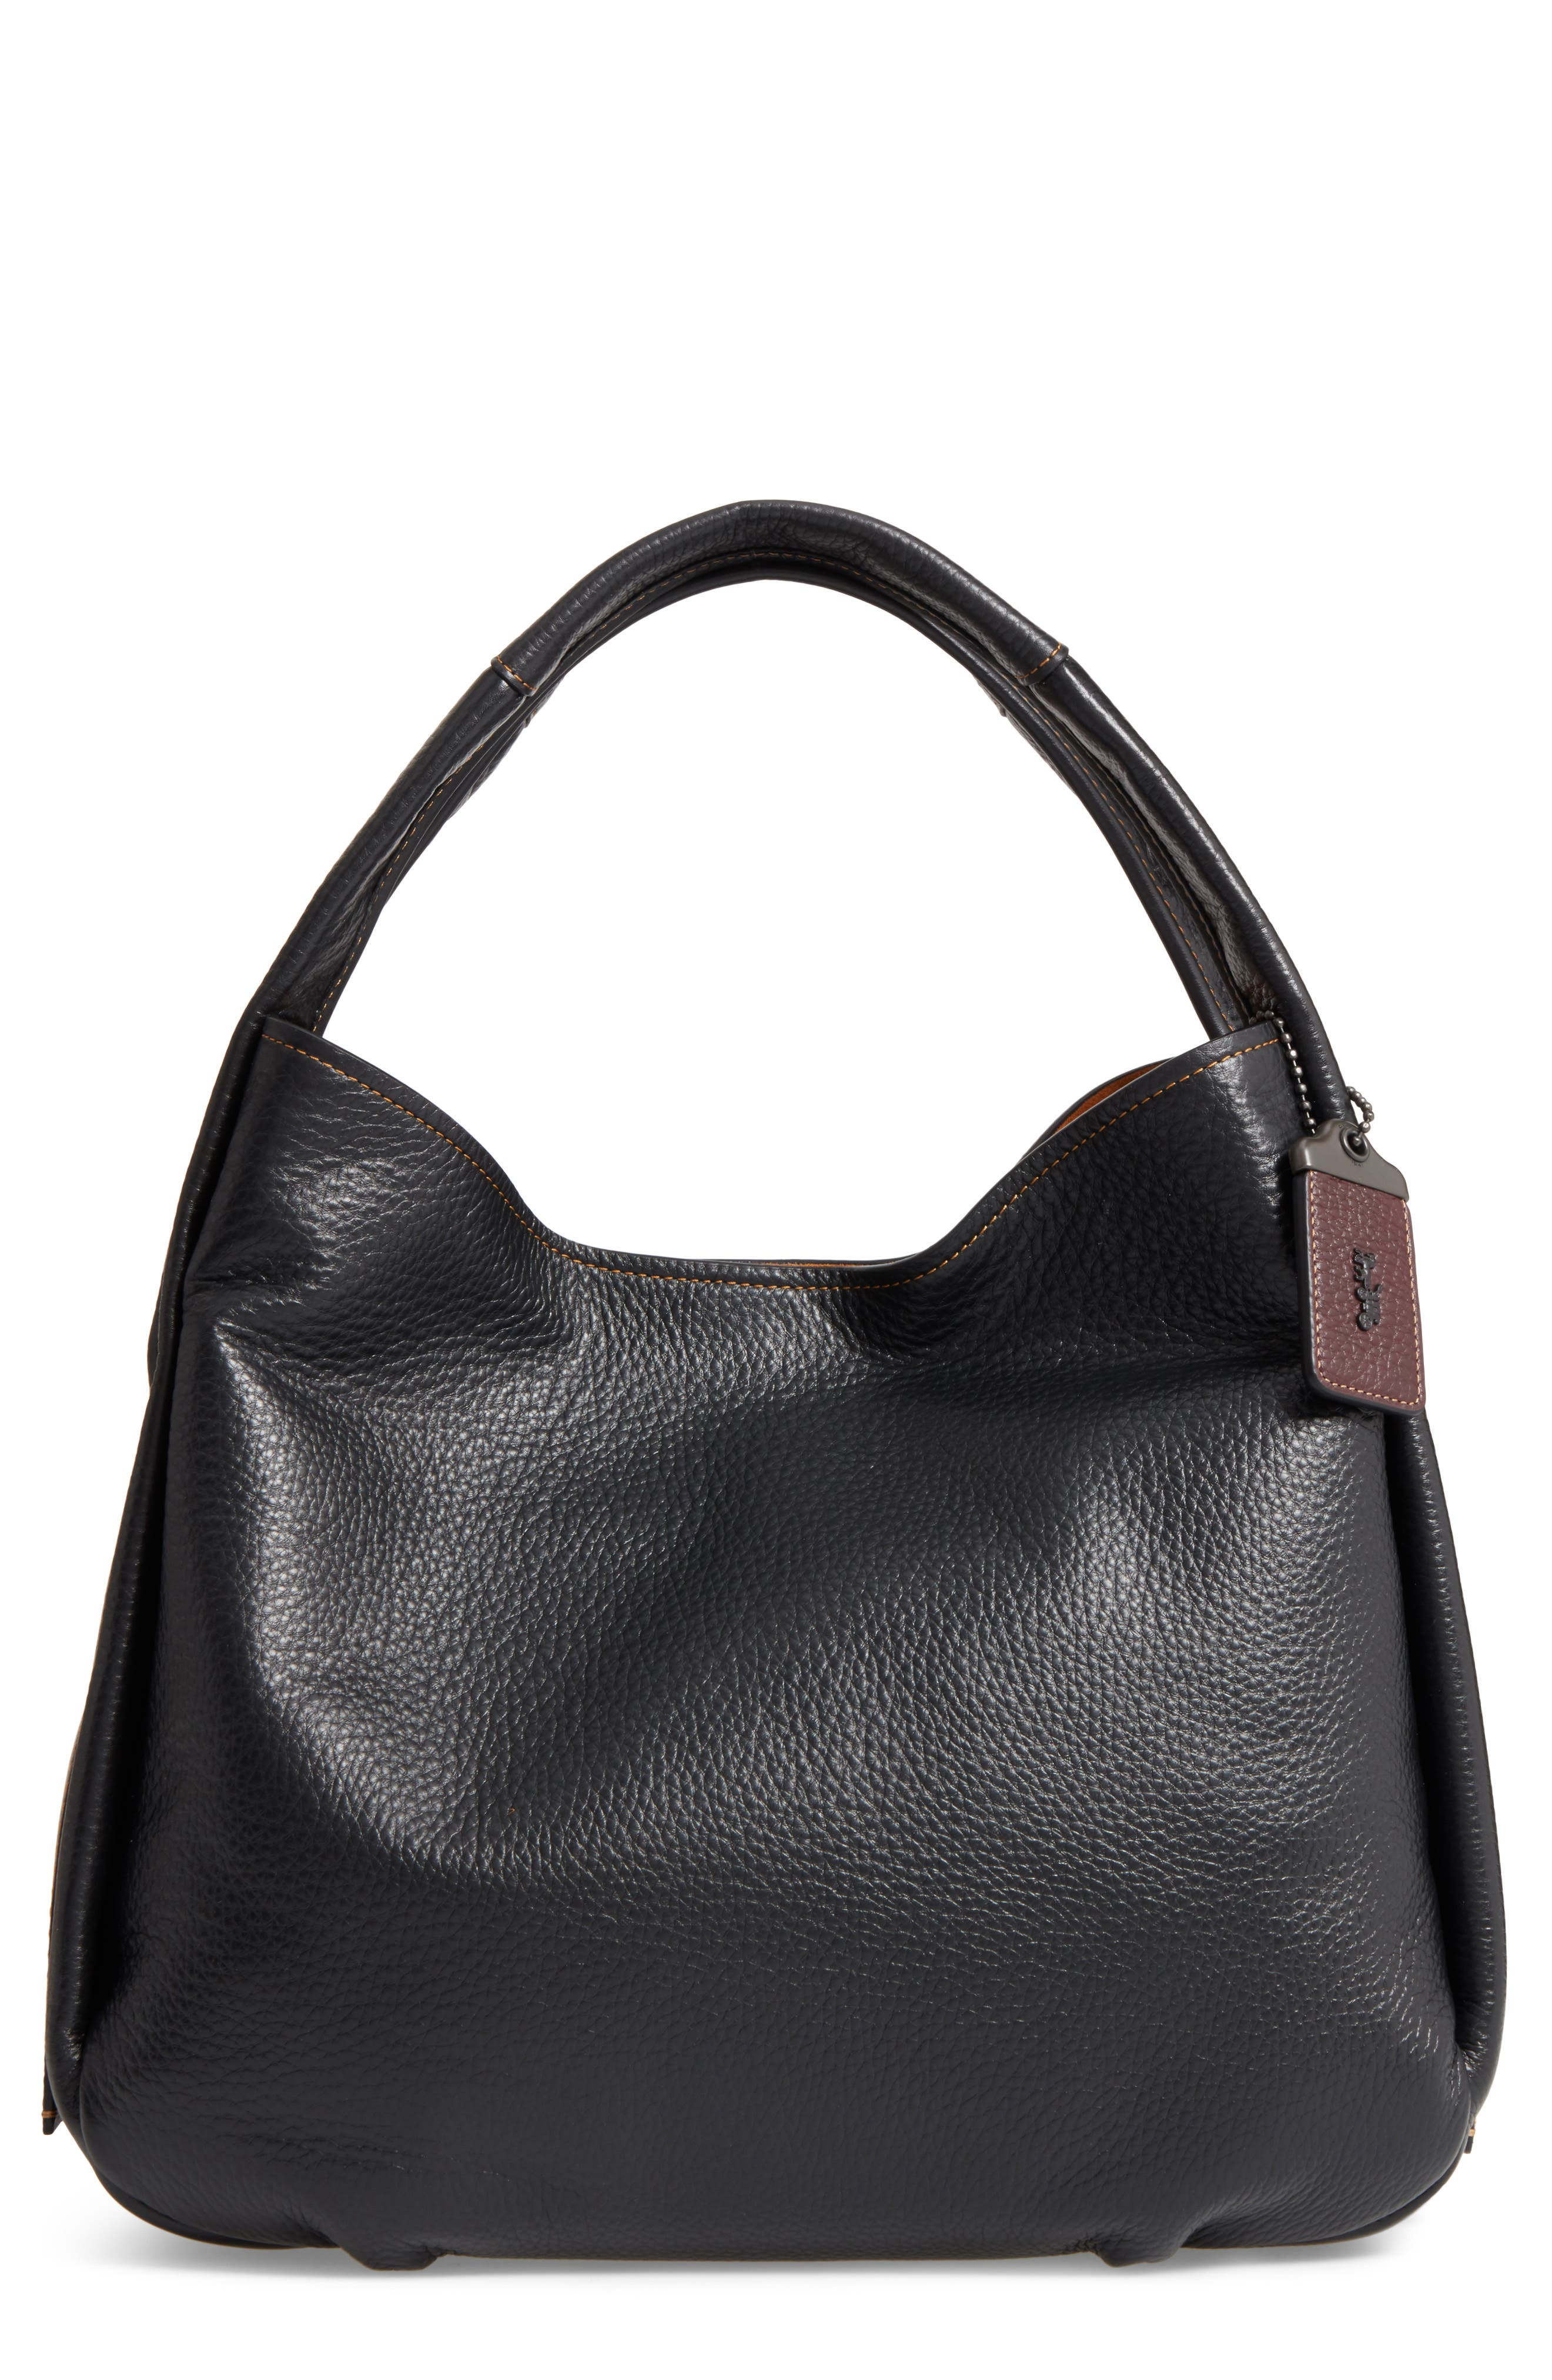 COACH 1941 Bandit Leather Hobo & Removable Shoulder Bag